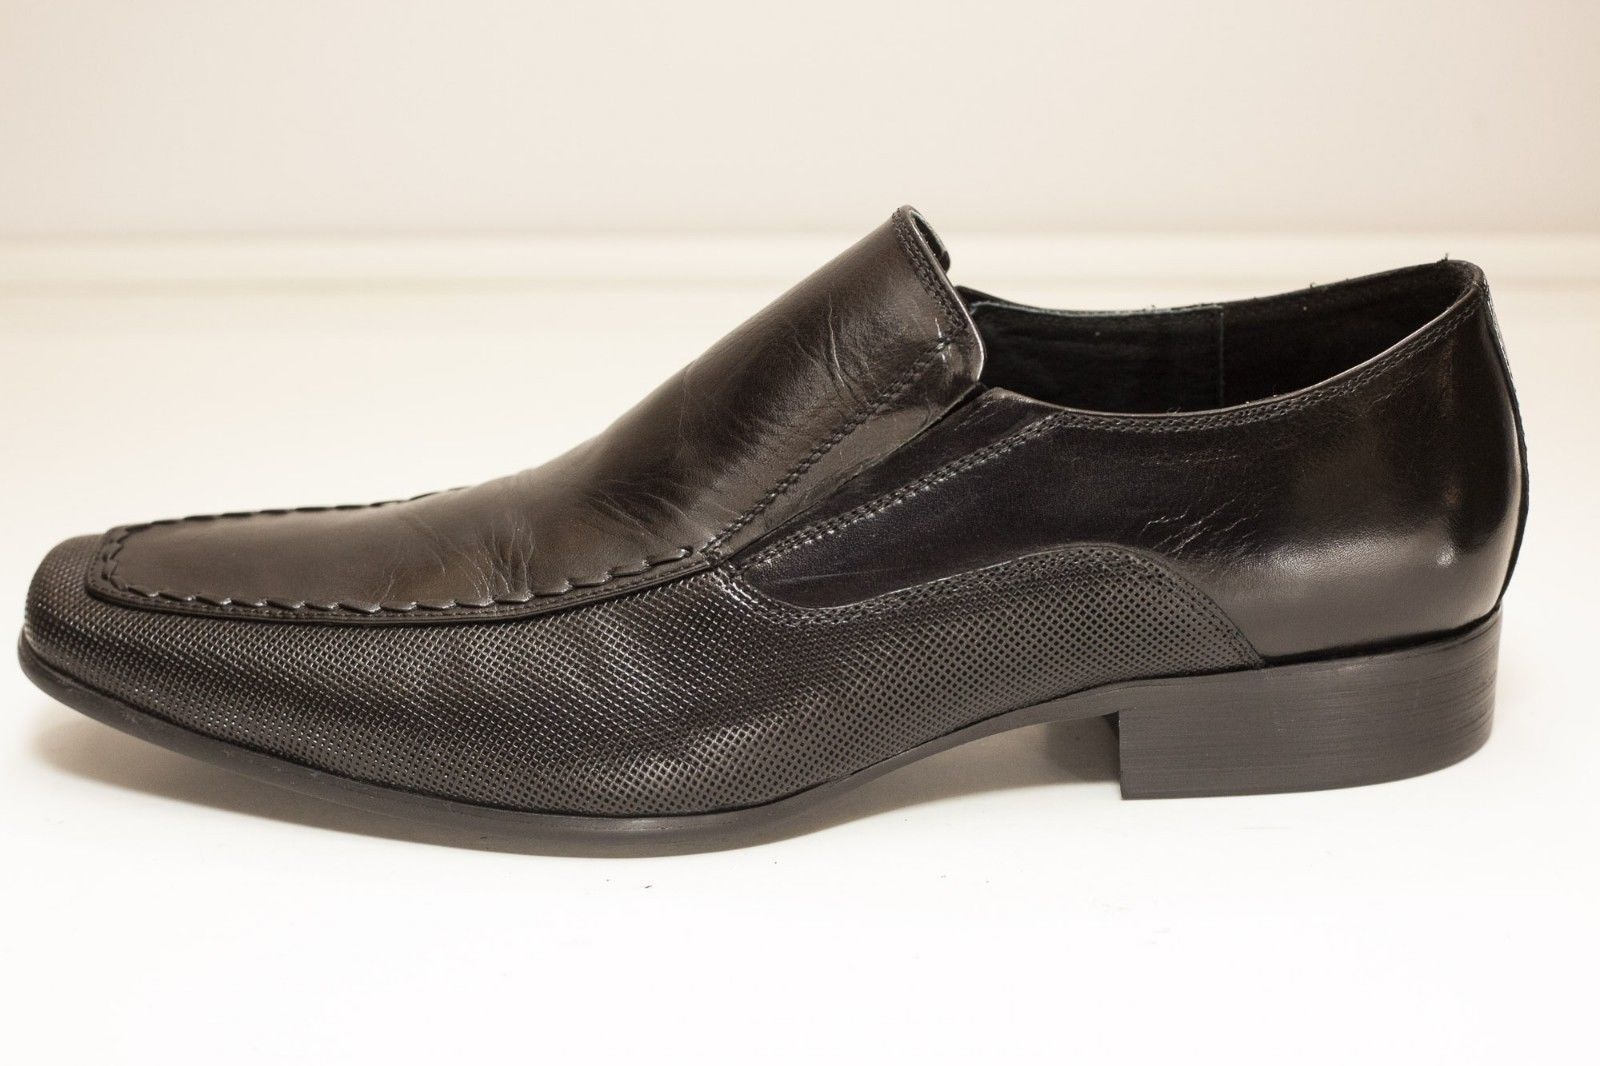 84e2e5284bb Steve Madden Size 11 Black Slip On Loafer and 50 similar items. S l1600